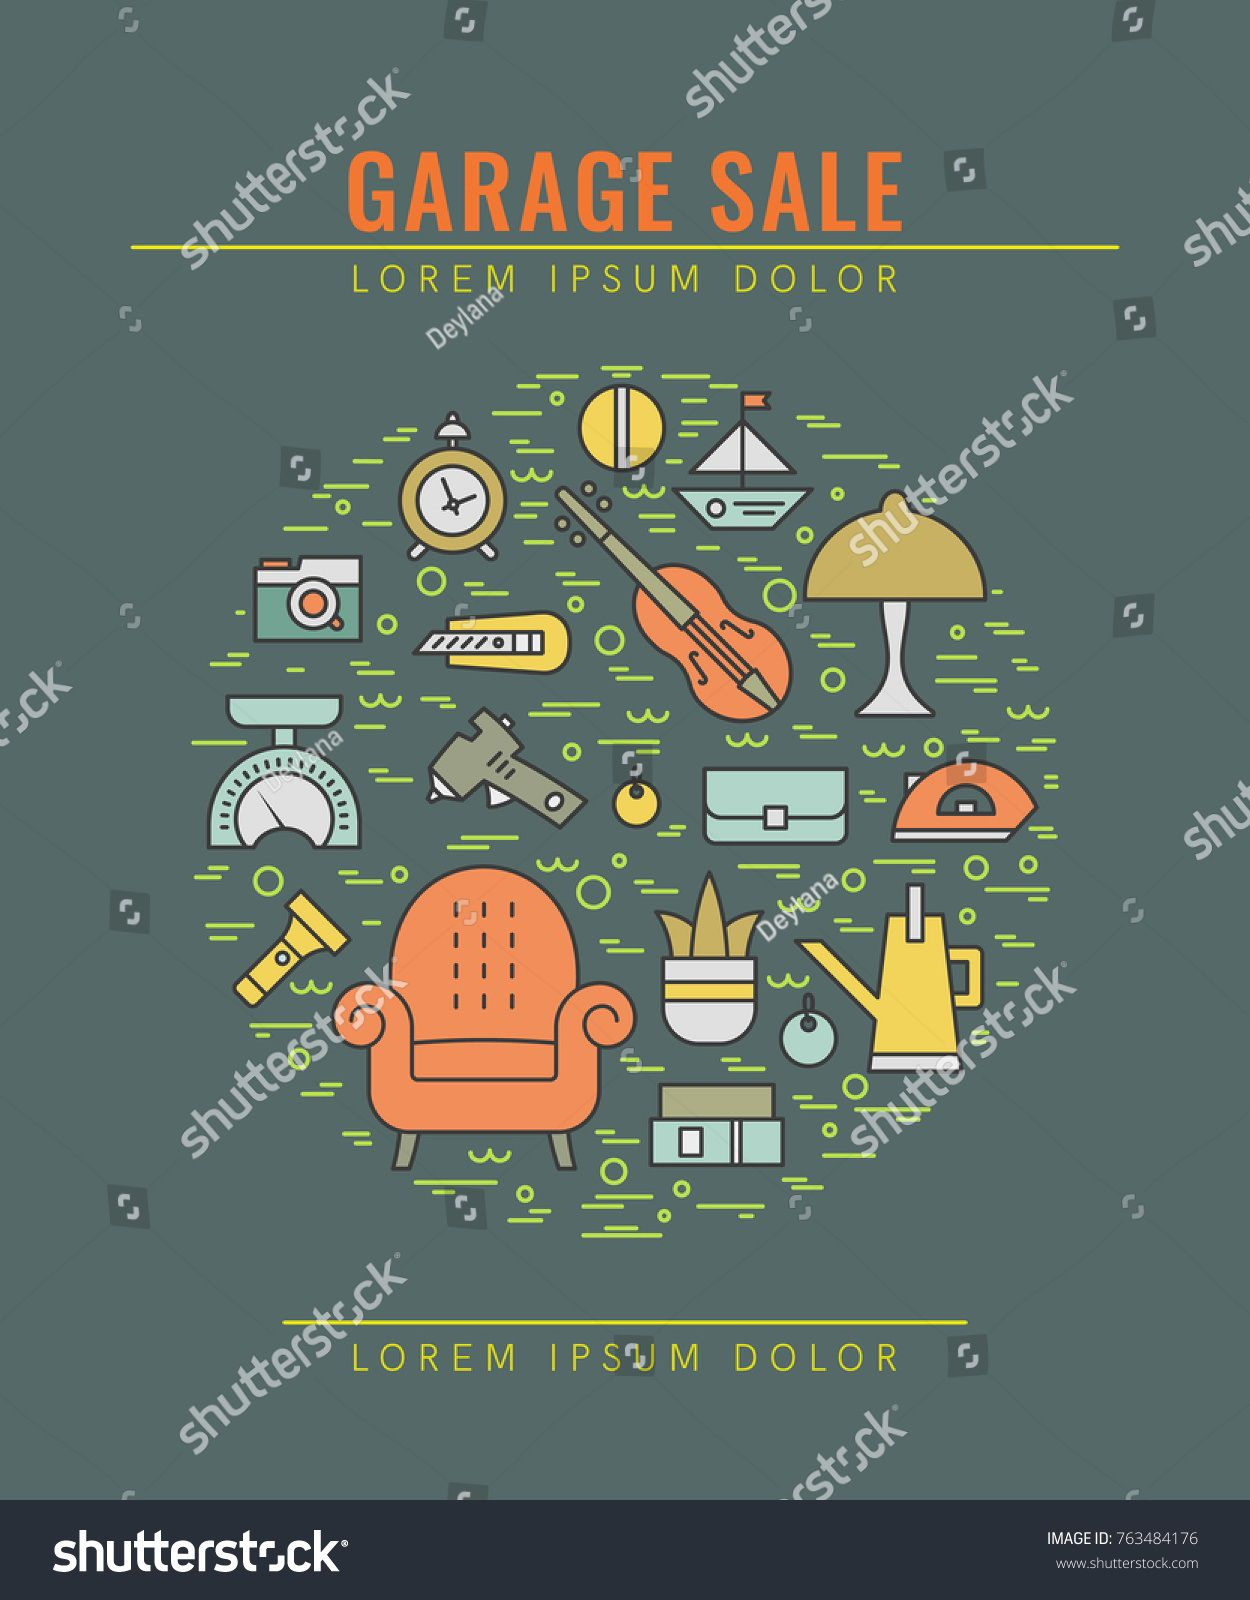 008 Impressive Yard Sale Flyer Template Concept  Ad Sample Microsoft Word Garage FreeFull